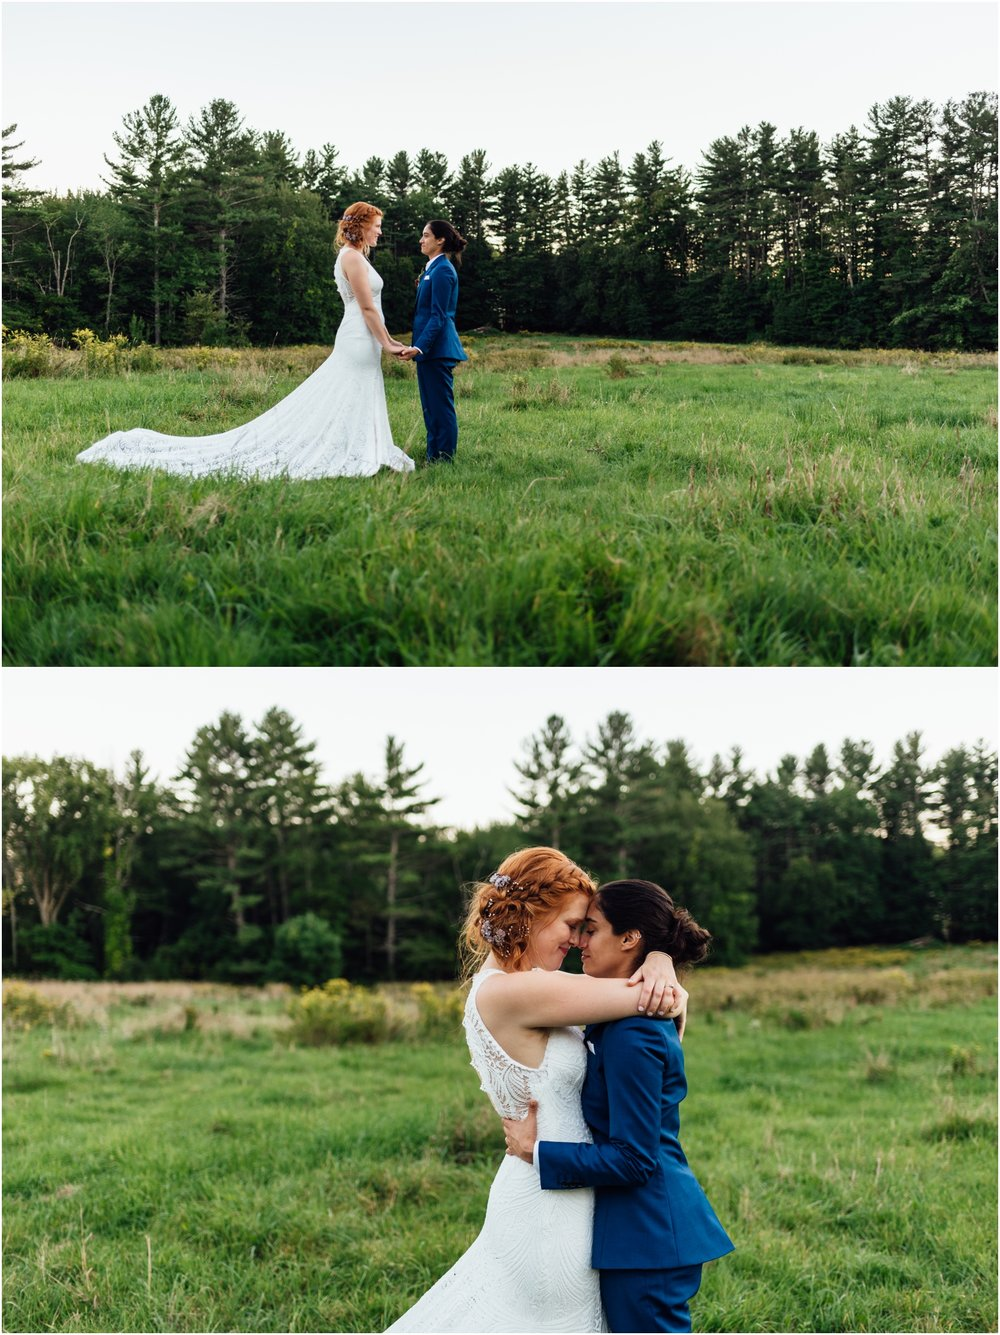 Kate_and_Michele_New_Hampshire_wedding_the_photo_farm_0632.jpg